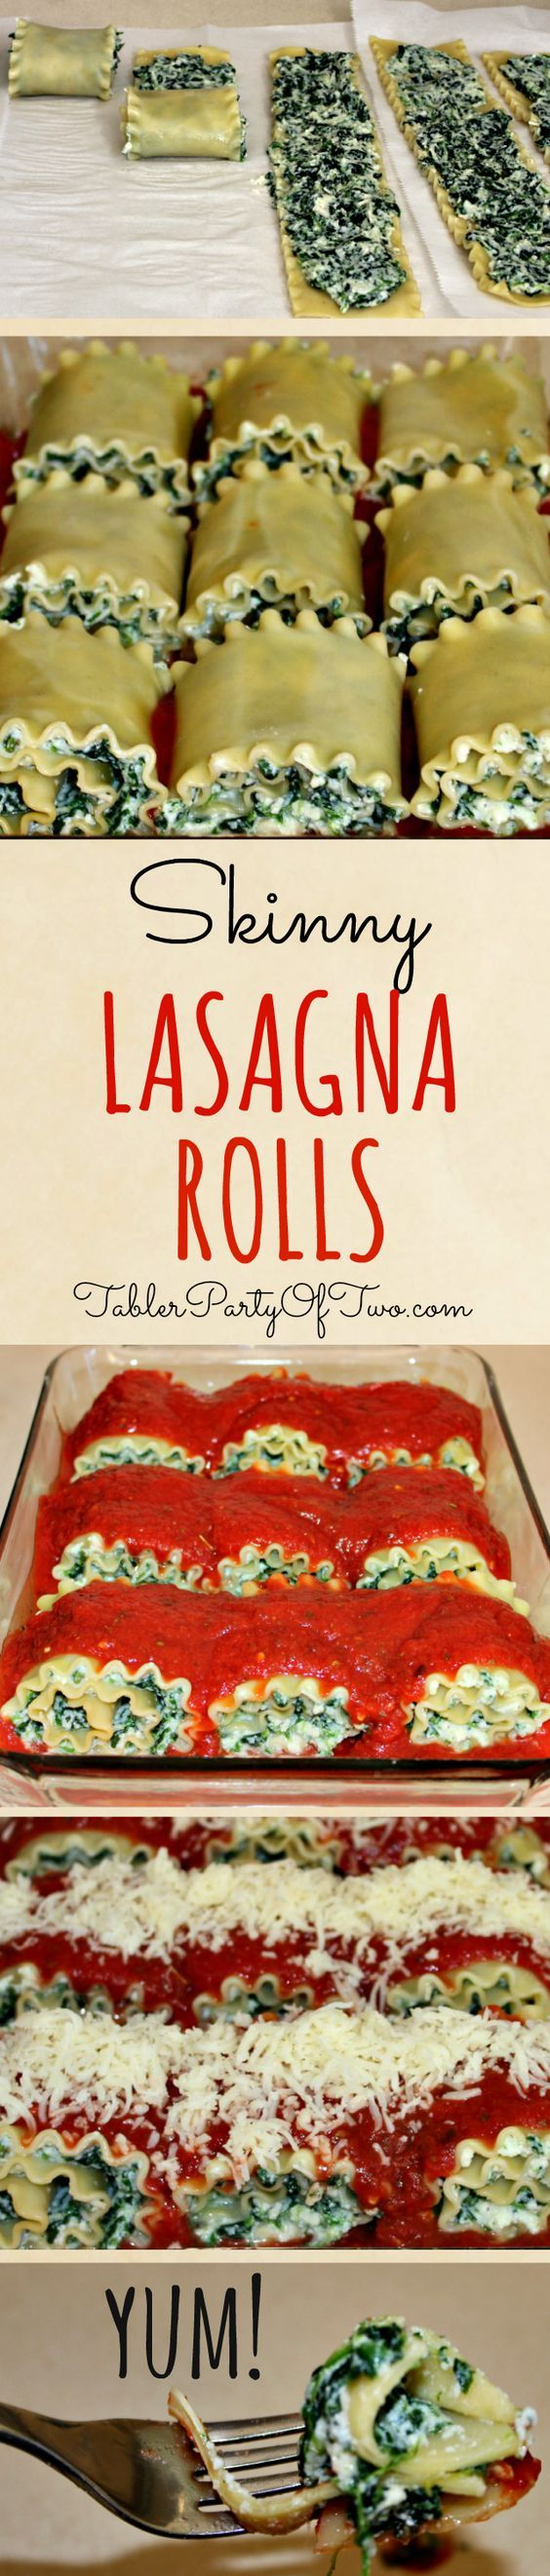 "These Skinny Lasagna Rolls are really easy to make and are a ""no-guilt"" way to enjoy the guilty pleasure of lasagna! Have one roll with a side of salad for a perfectly healthy dinner!  Tabler Party of Two 